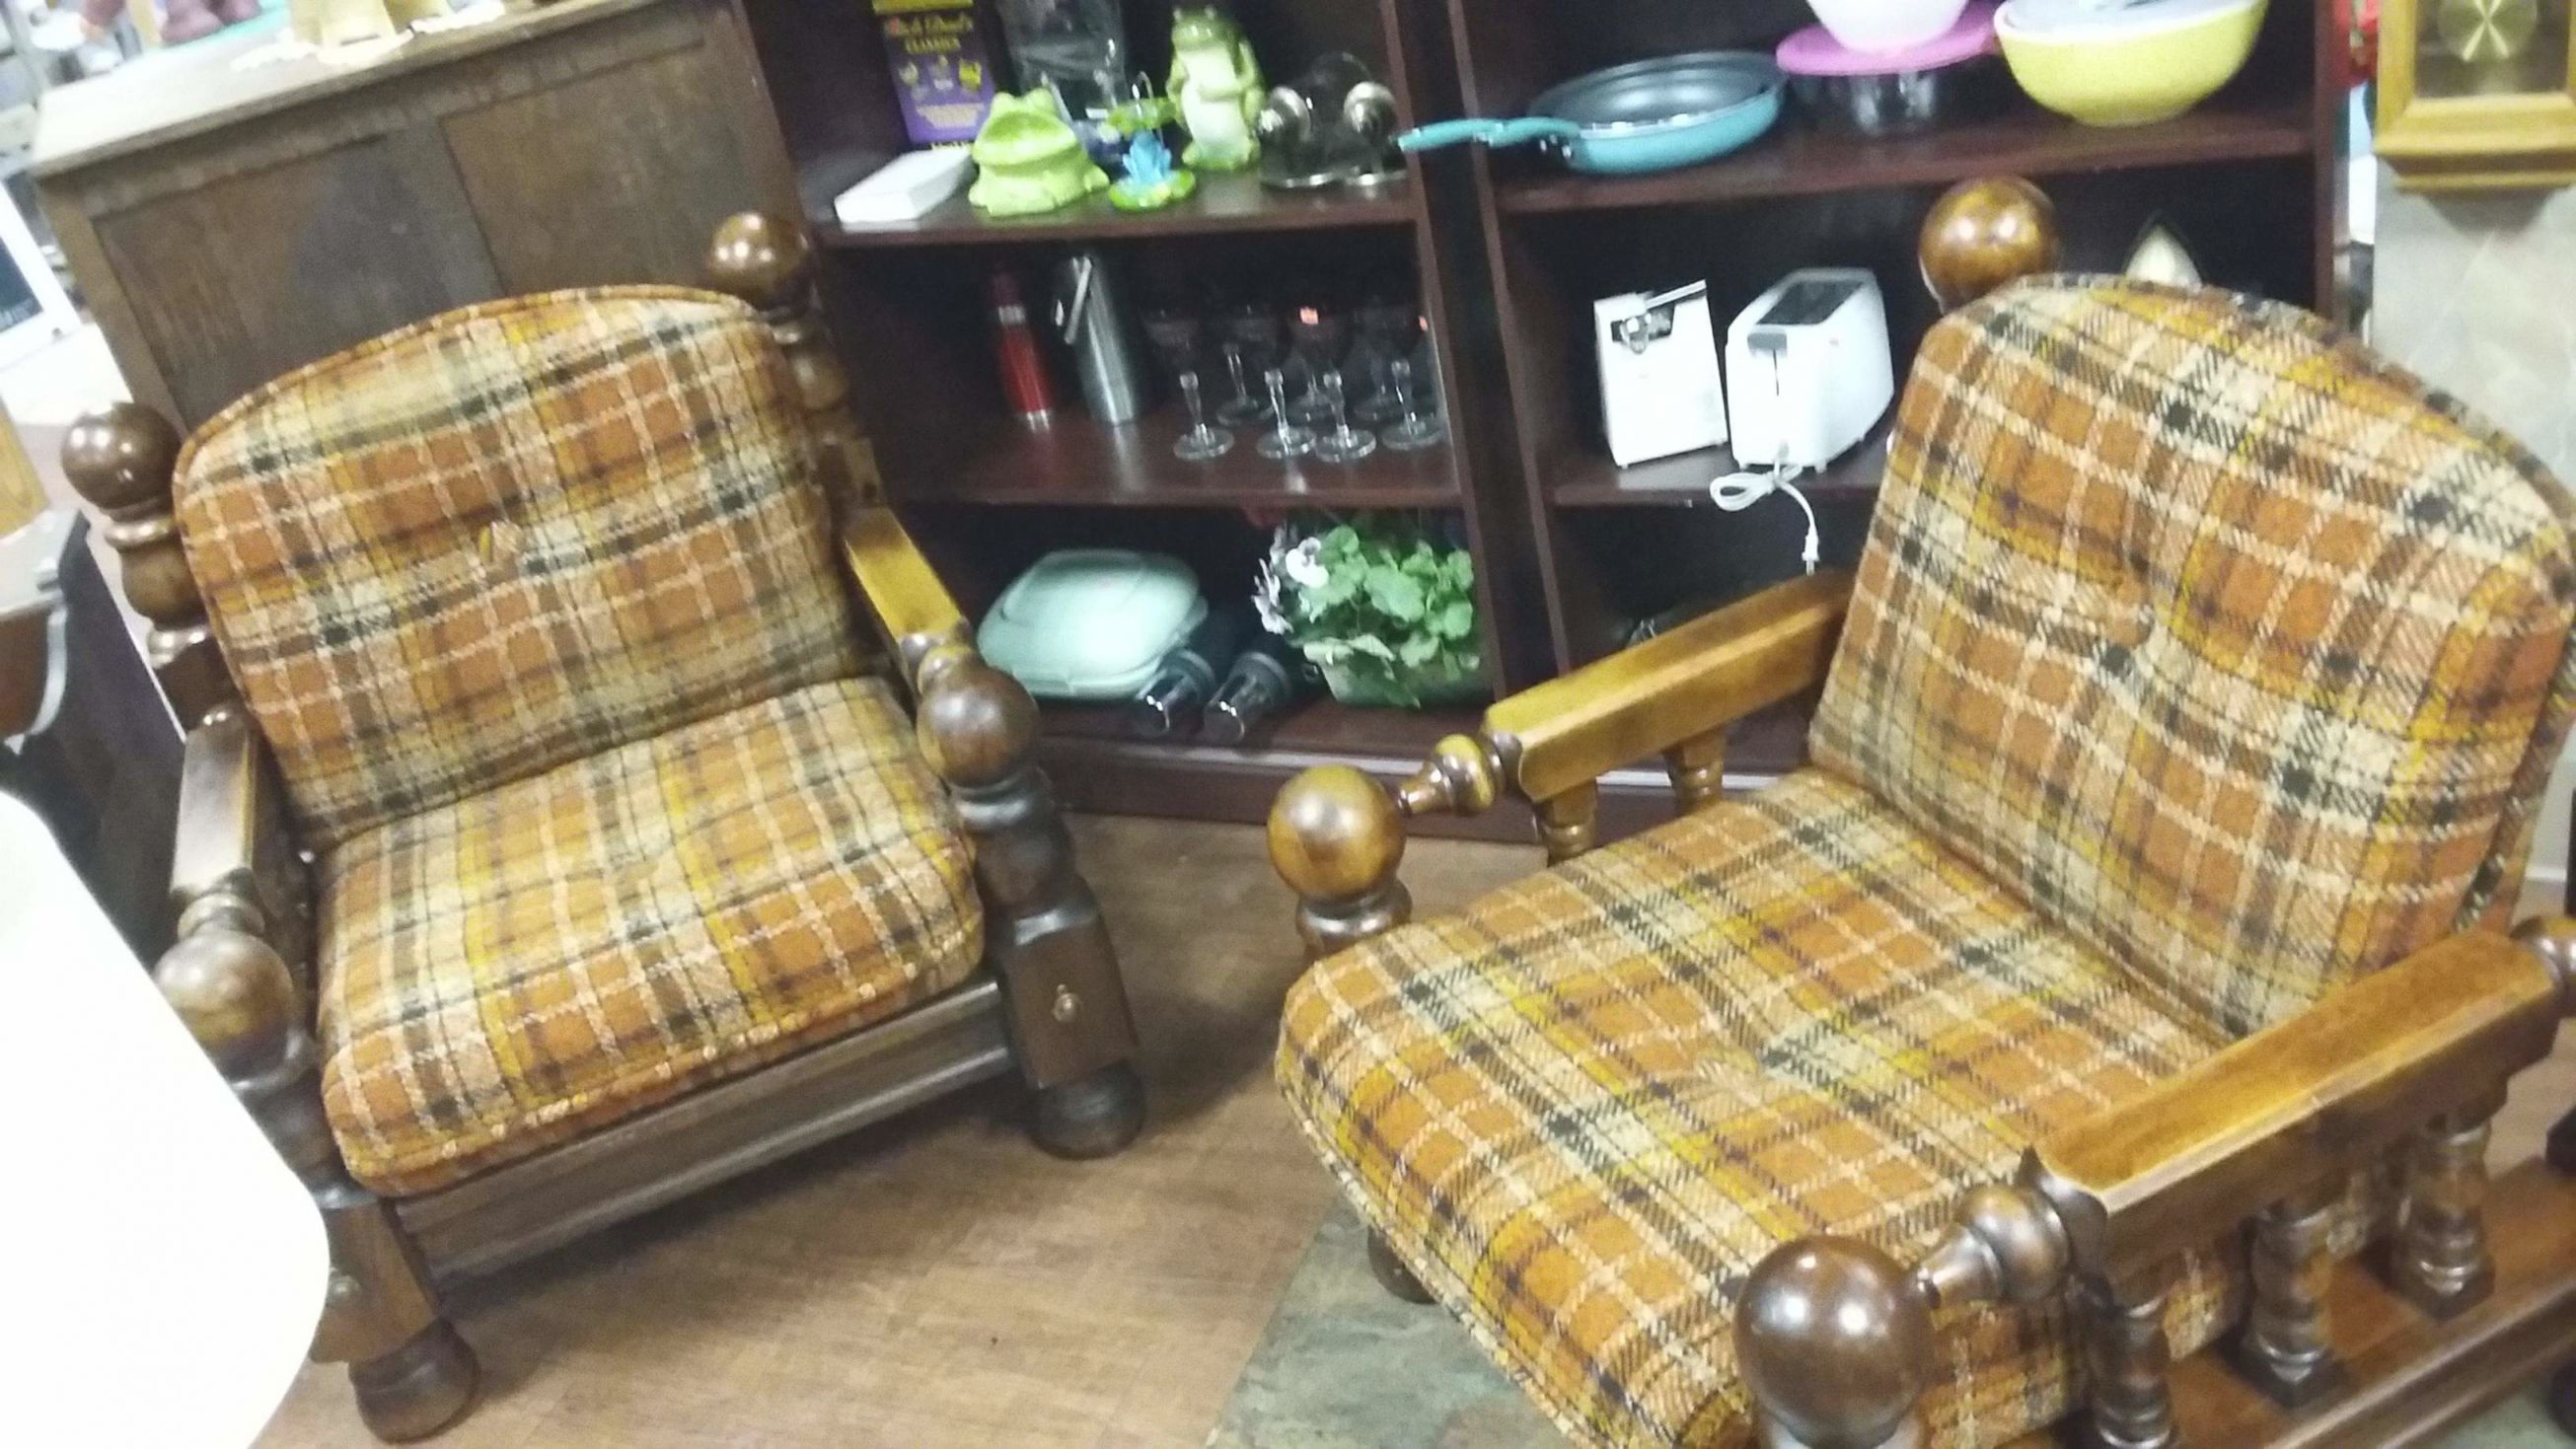 Vintage Sears, Roebuck & Co. Livingroom Set | Collectors Weekly within Unique Sears Living Room Furniture